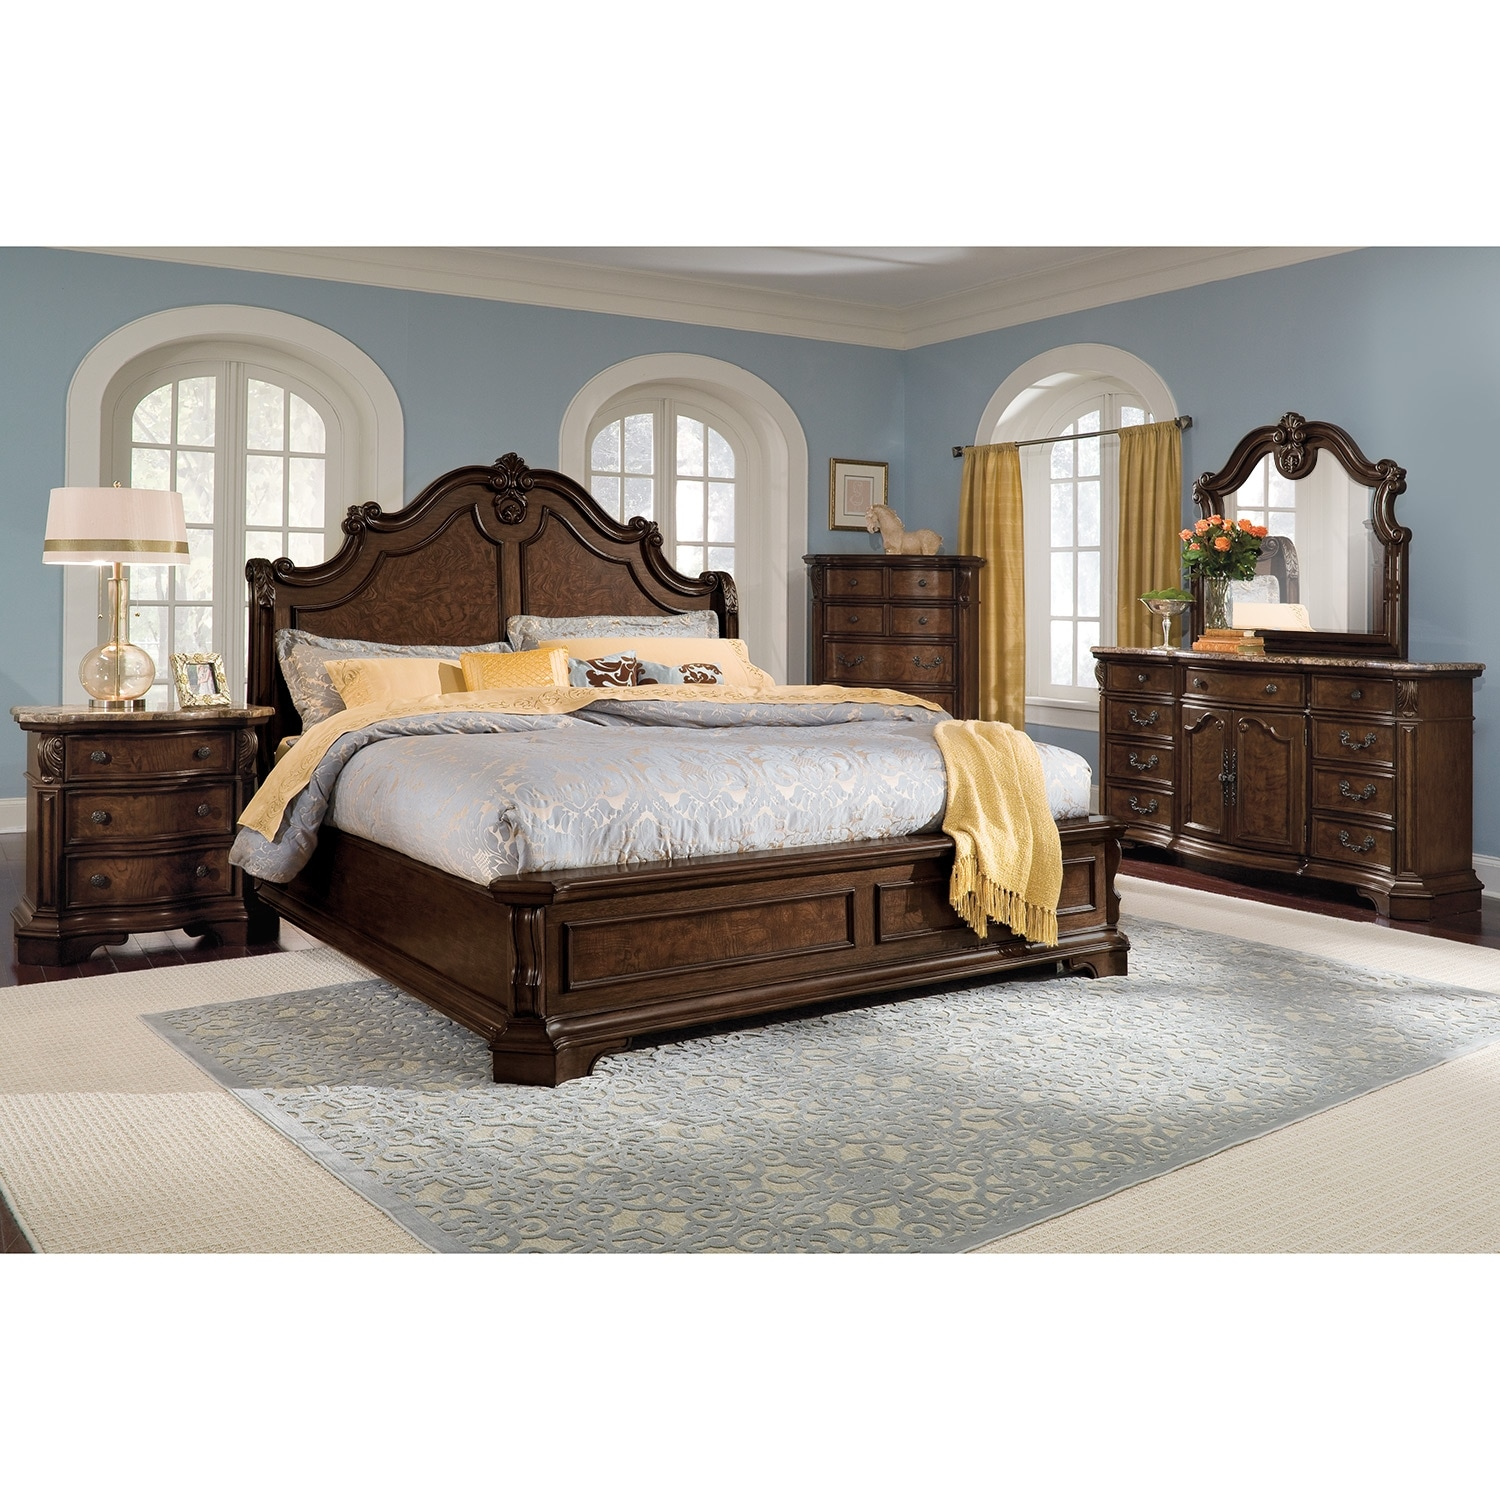 Monticello nightstand pecan american signature furniture for Bedroom furniture value city